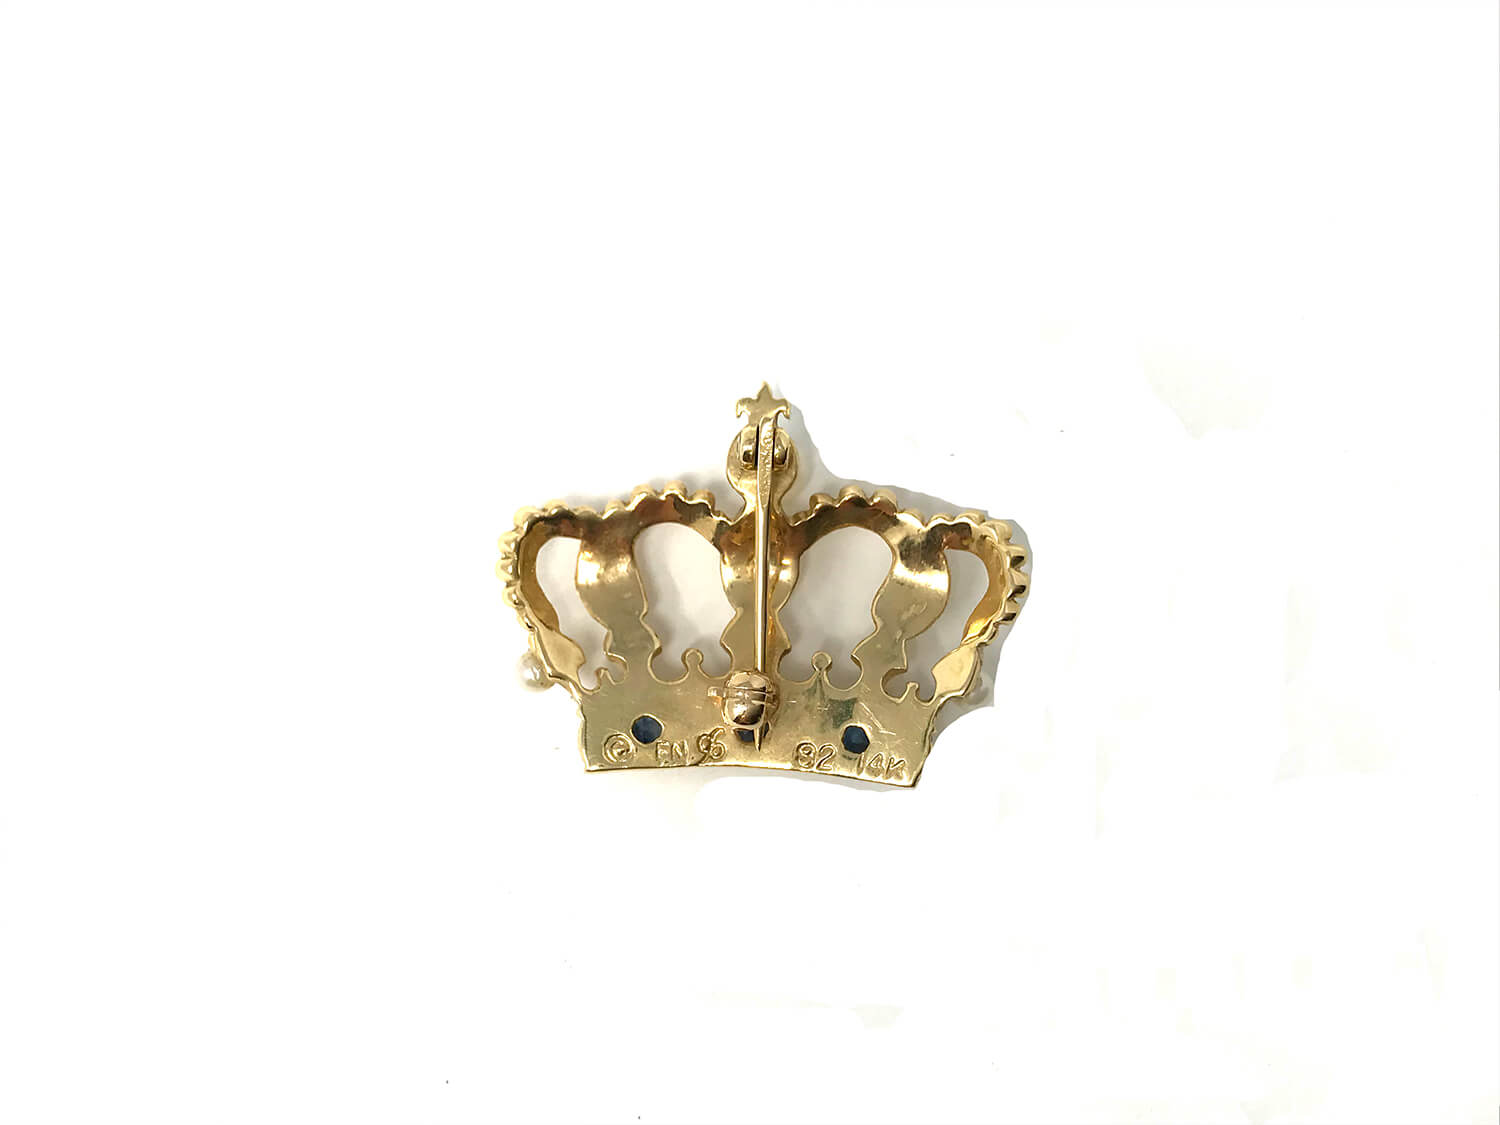 House of Igor Carl Faberge 14k Crown Brooch